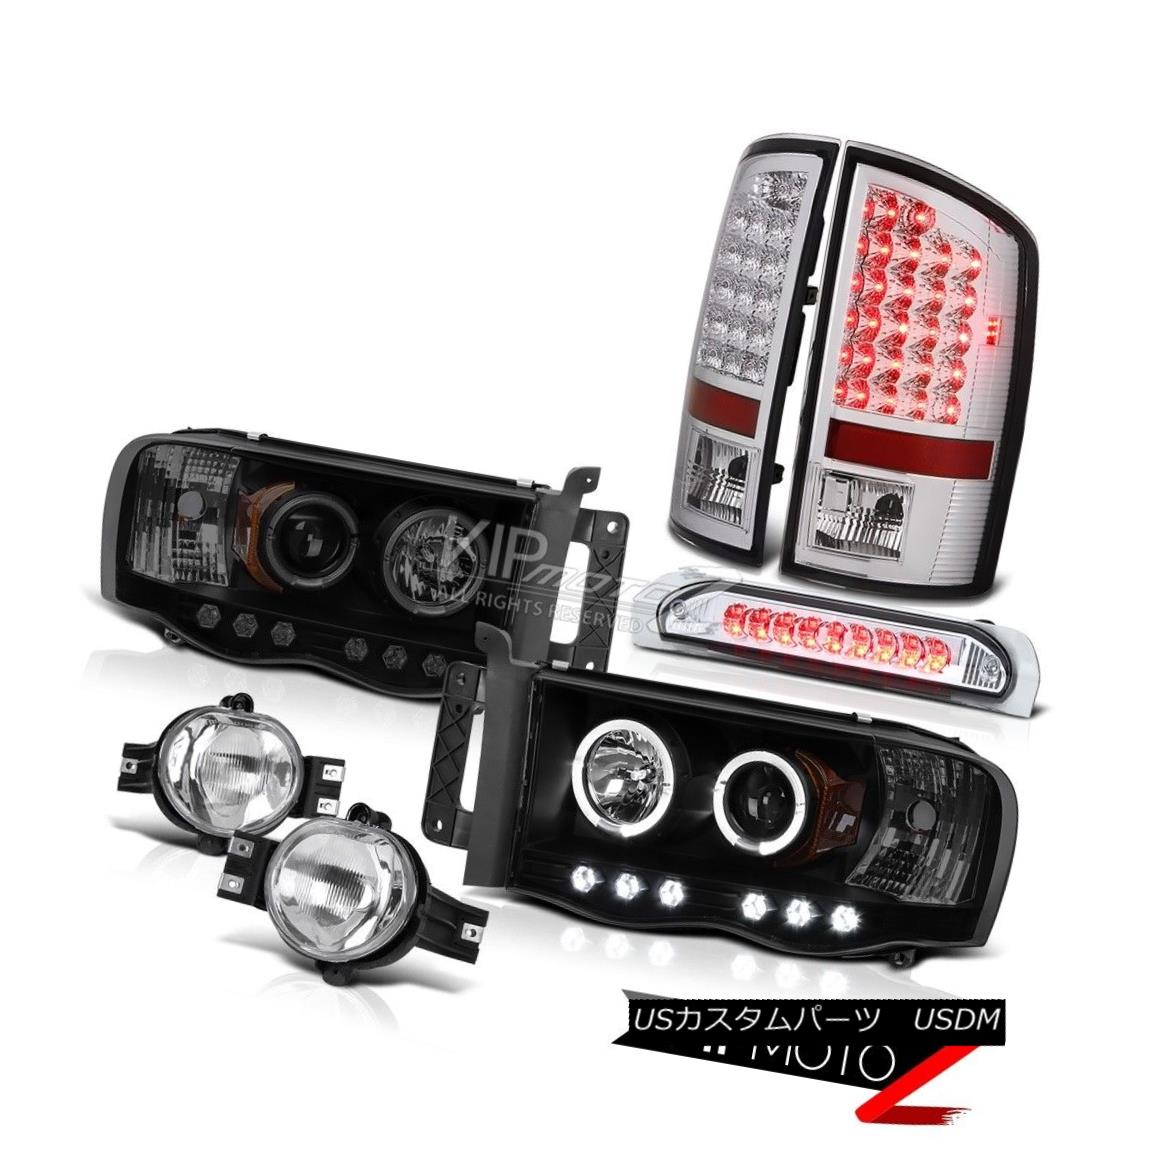 ヘッドライト 02-05 Ram Smoke Halo Rim Headlight SMD Tail Light Bumper Fog High Brake Lamp LED 02-05 Ram Smoke Halo RimヘッドライトSMDテールライトバンパーフォグハイブレーキランプLED